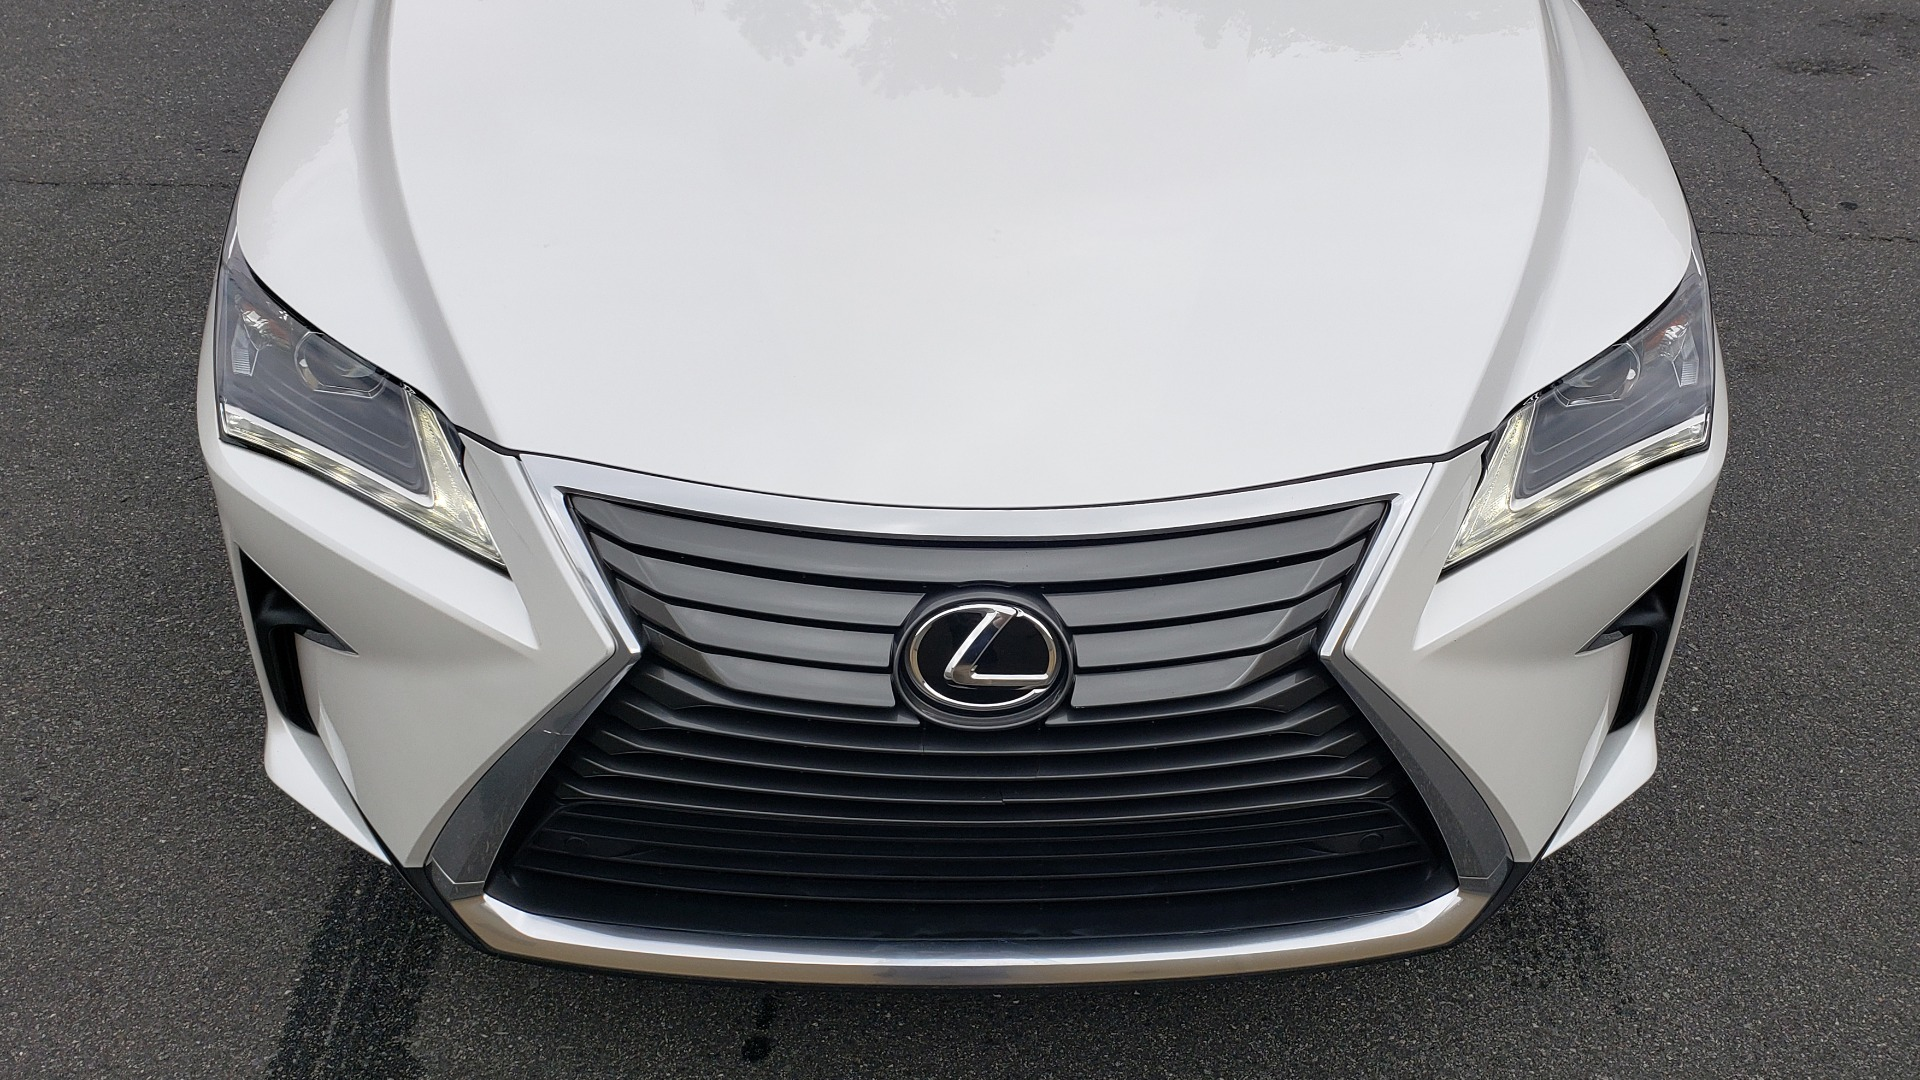 Used 2016 Lexus RX 350 FWD / 4-DR / 3.5L V6 / 8-SPD AUTO / LEATHER / REARVIEW for sale $29,795 at Formula Imports in Charlotte NC 28227 23